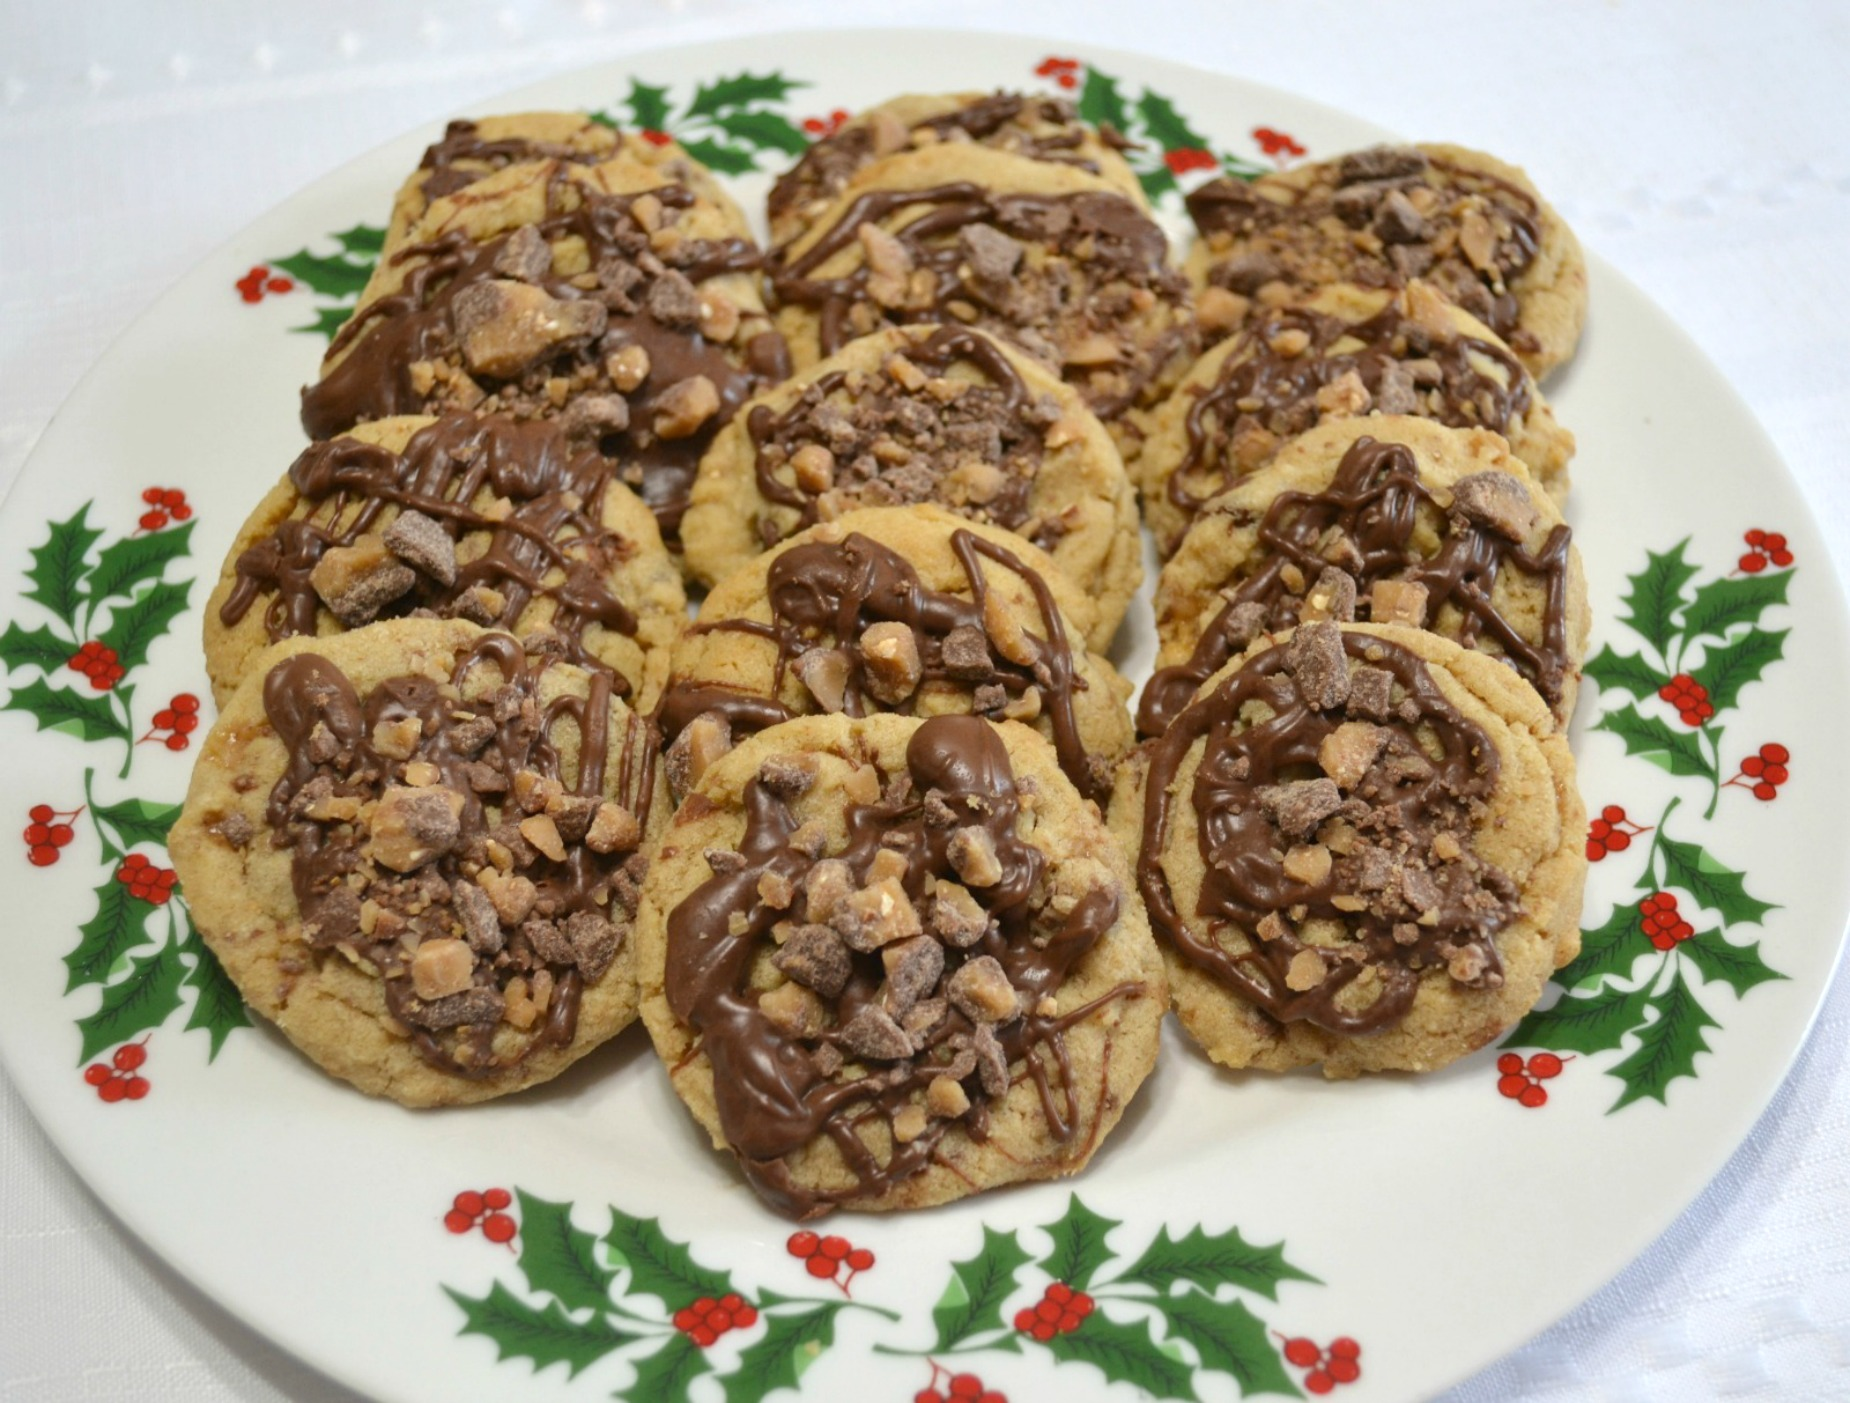 cookies, peanut butter, choc chips, toffee bits, holiday baking